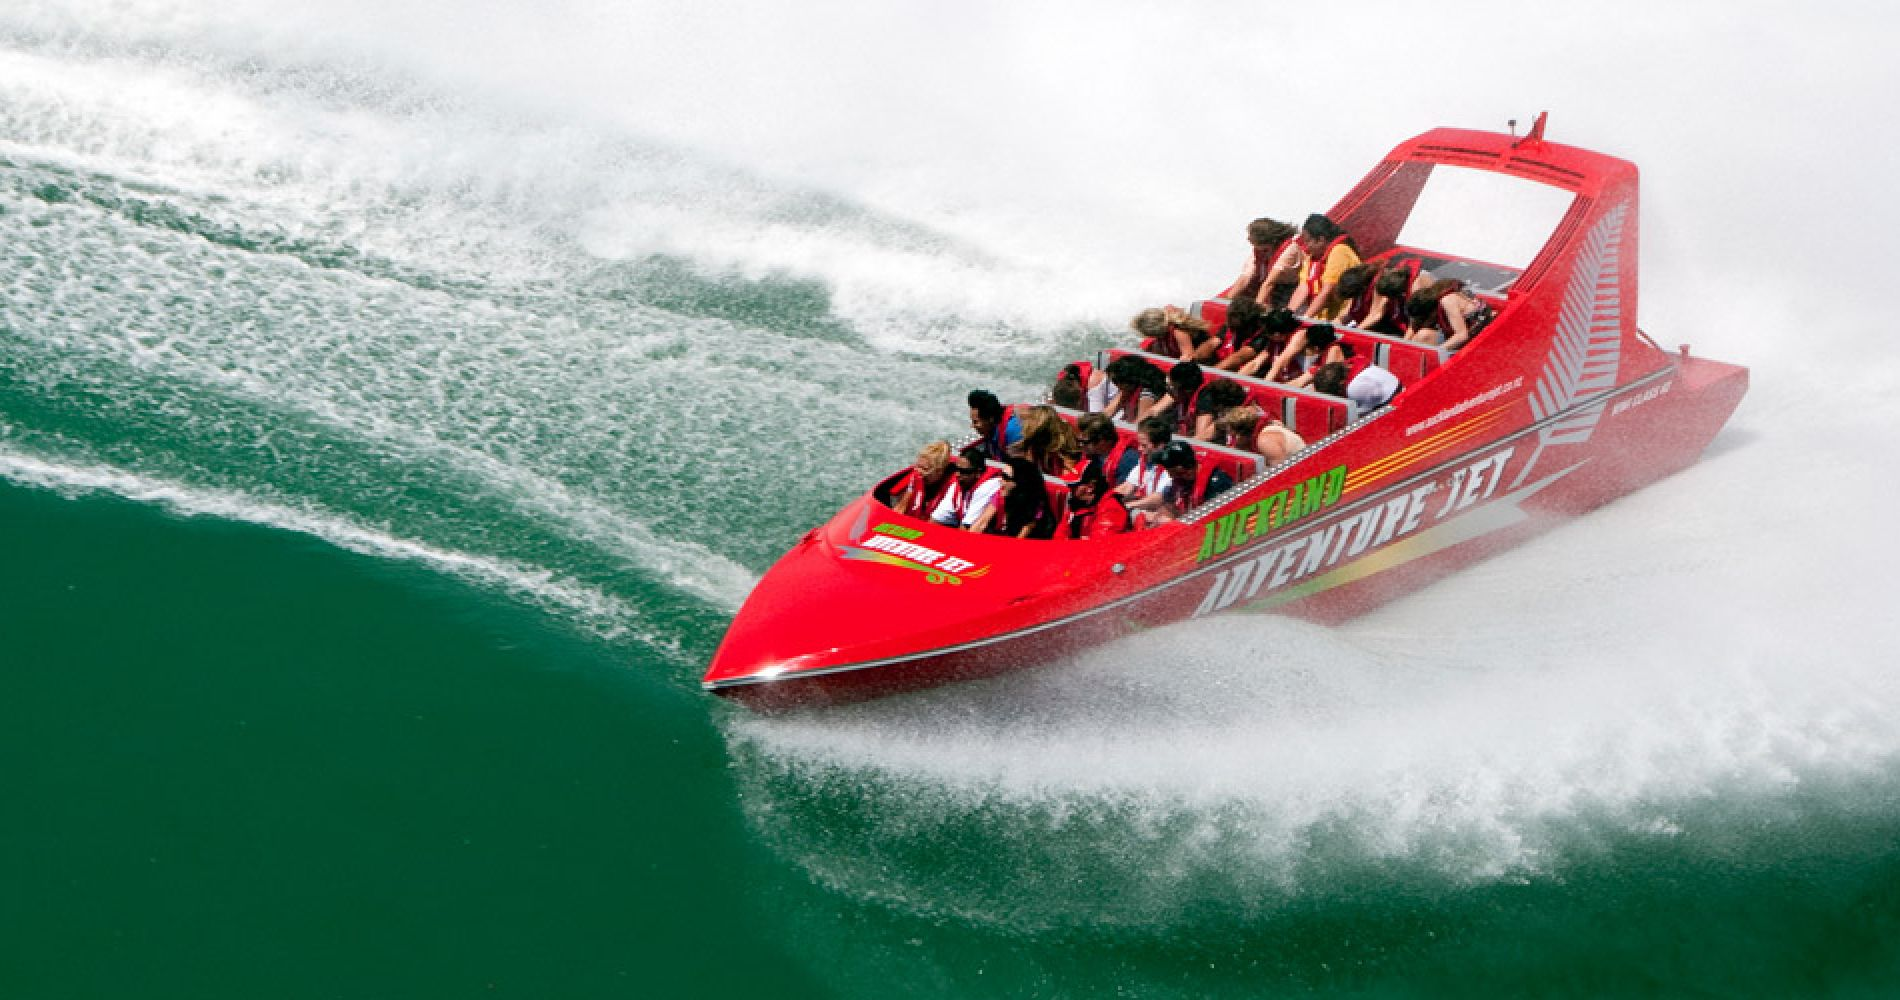 Jet Boat Adventure New Zealand Experience